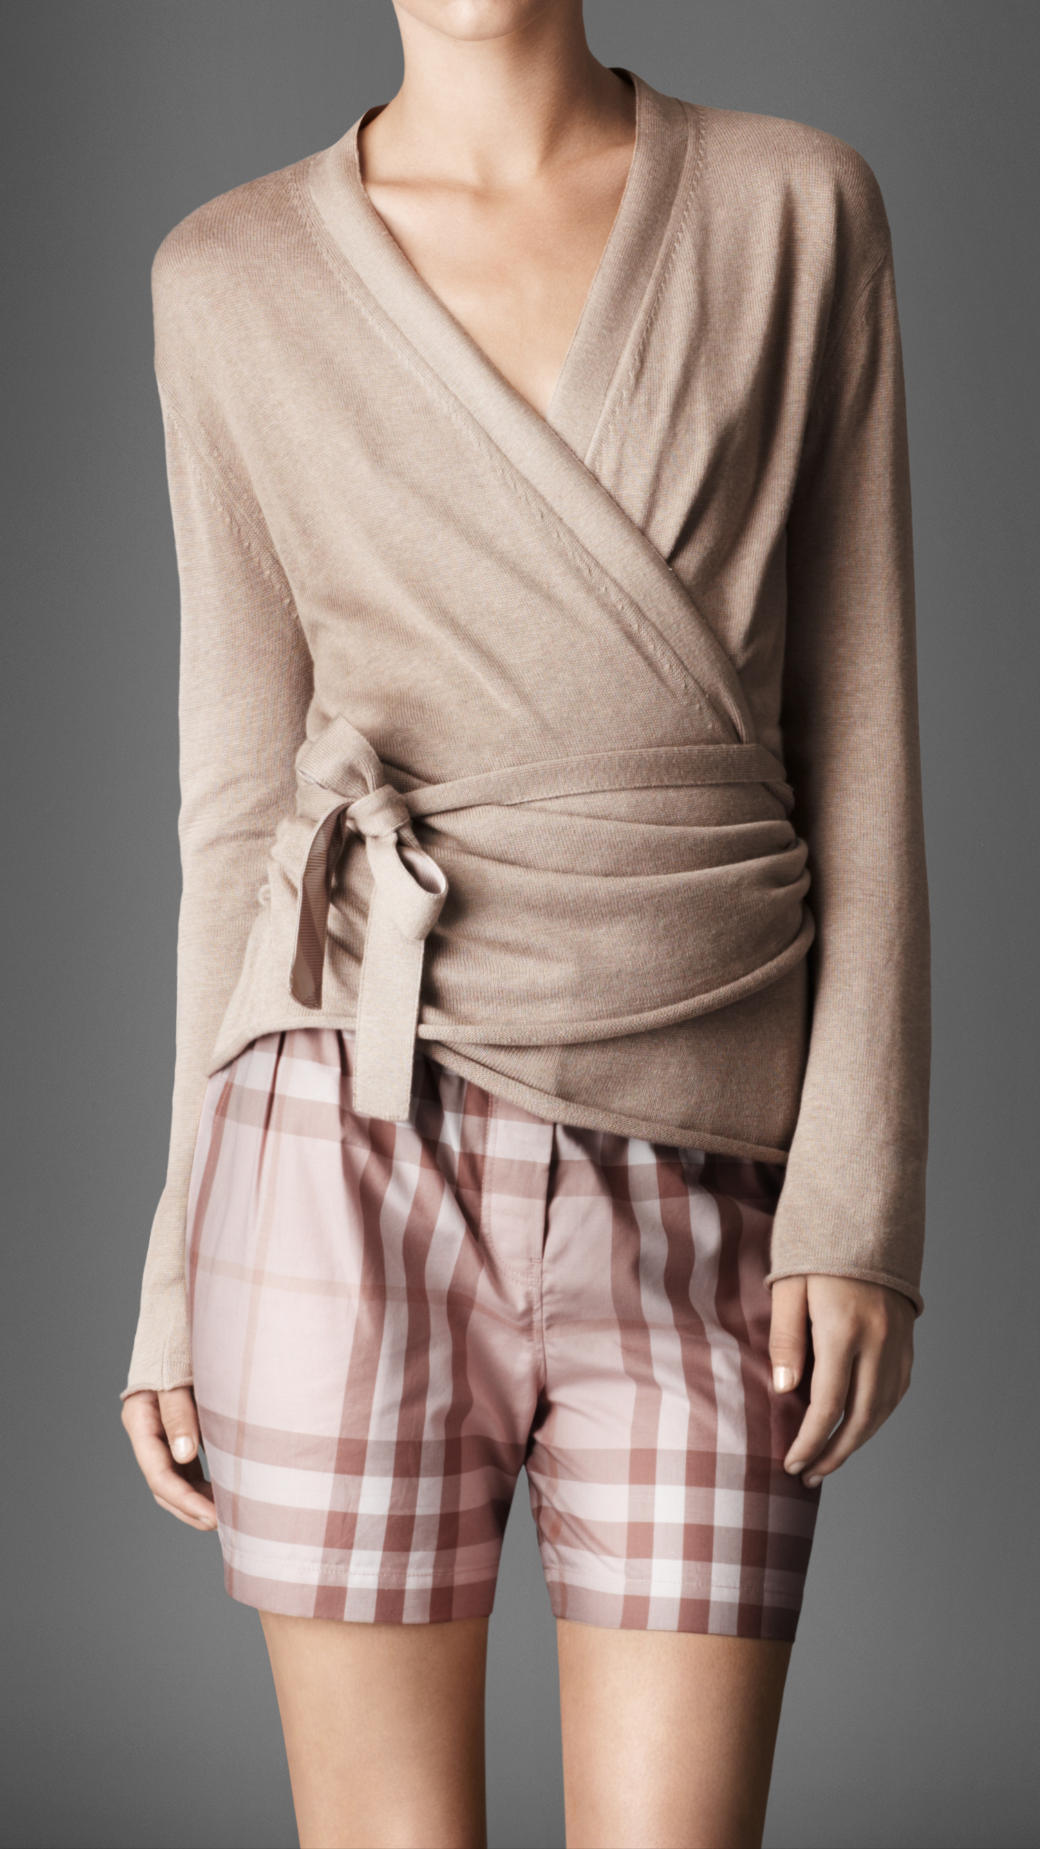 Burberry Silk Blend Wrap Cardigan in Natural | Lyst